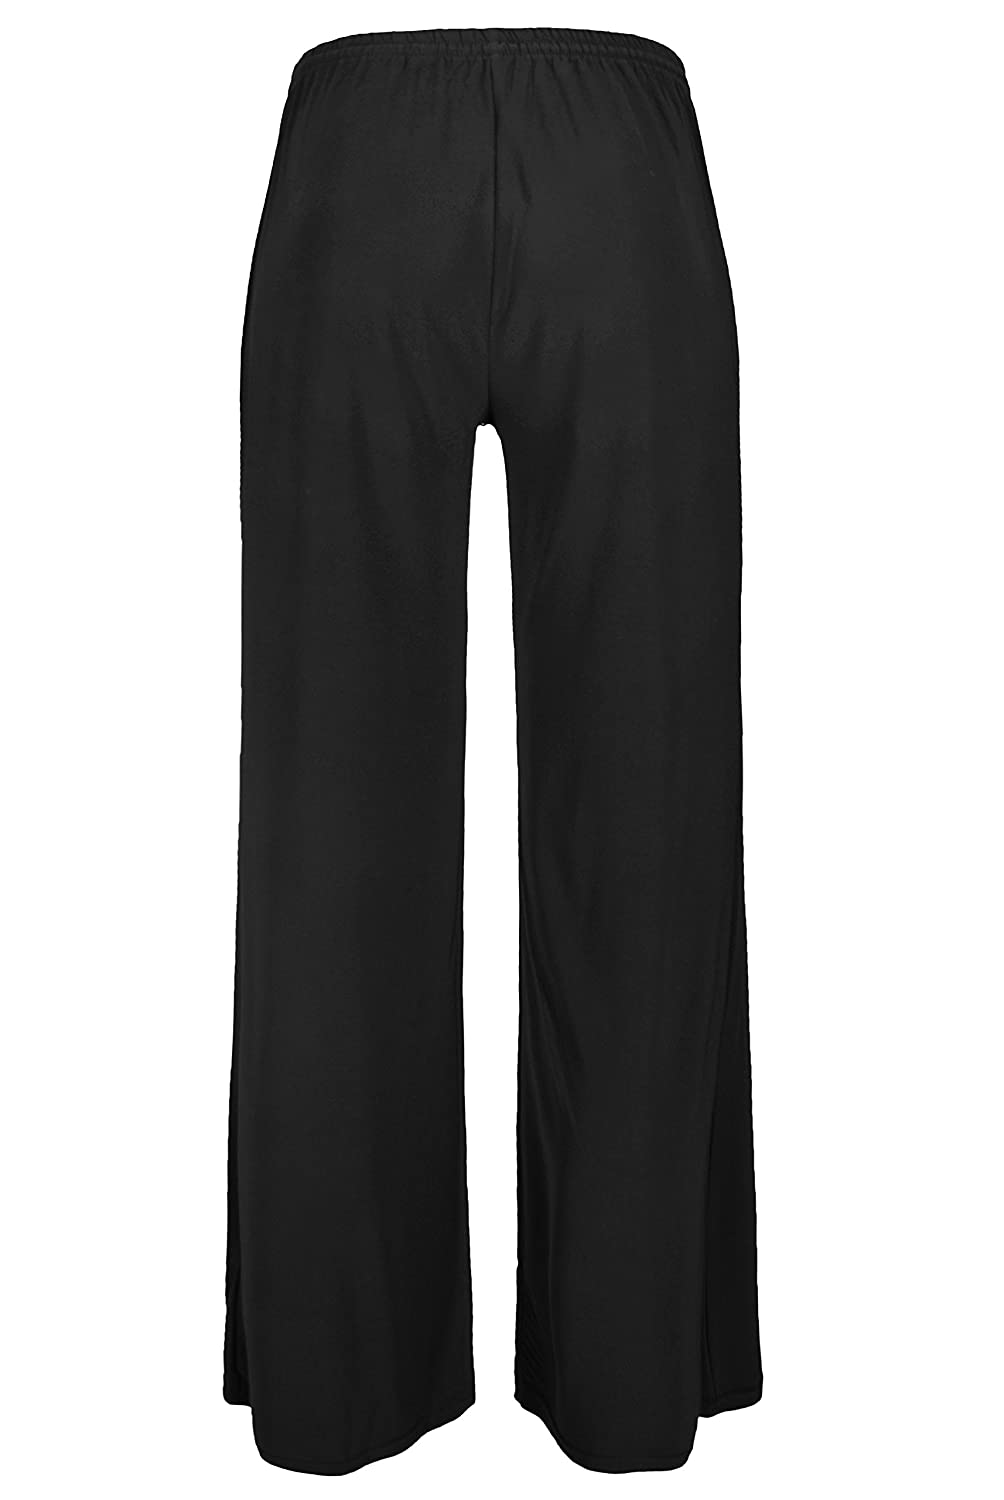 1e6f5fe8b893f Plus Size Ladies Womens Palazzo Trousers Flared Loose Wide Leg Pants in Navy  Or Black Sizes 10-26  Amazon.co.uk  Clothing